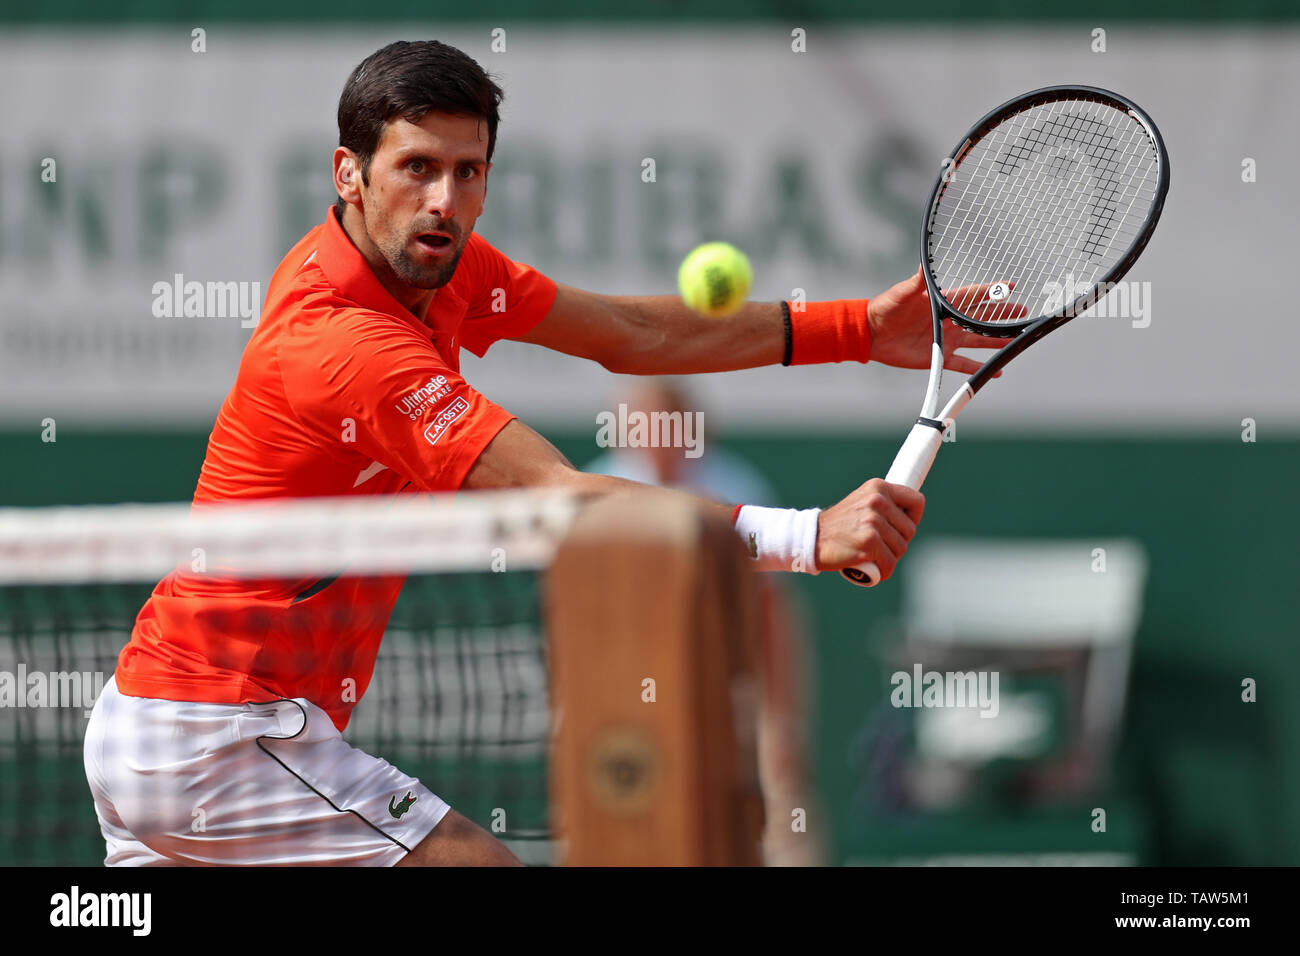 Paris, France. 28th May, 2019. Paris, France. 28th May, 2019. Roland Garros, paris, France; French Open Tennis tournament; Novak Djokovic (SRB) gets to the net for a backhand volley gainst Hubert Hurkacz (POL) Credit: Action Plus Sports Images/Alamy Live News Credit: Action Plus Sports Images/Alamy Live News - Stock Image